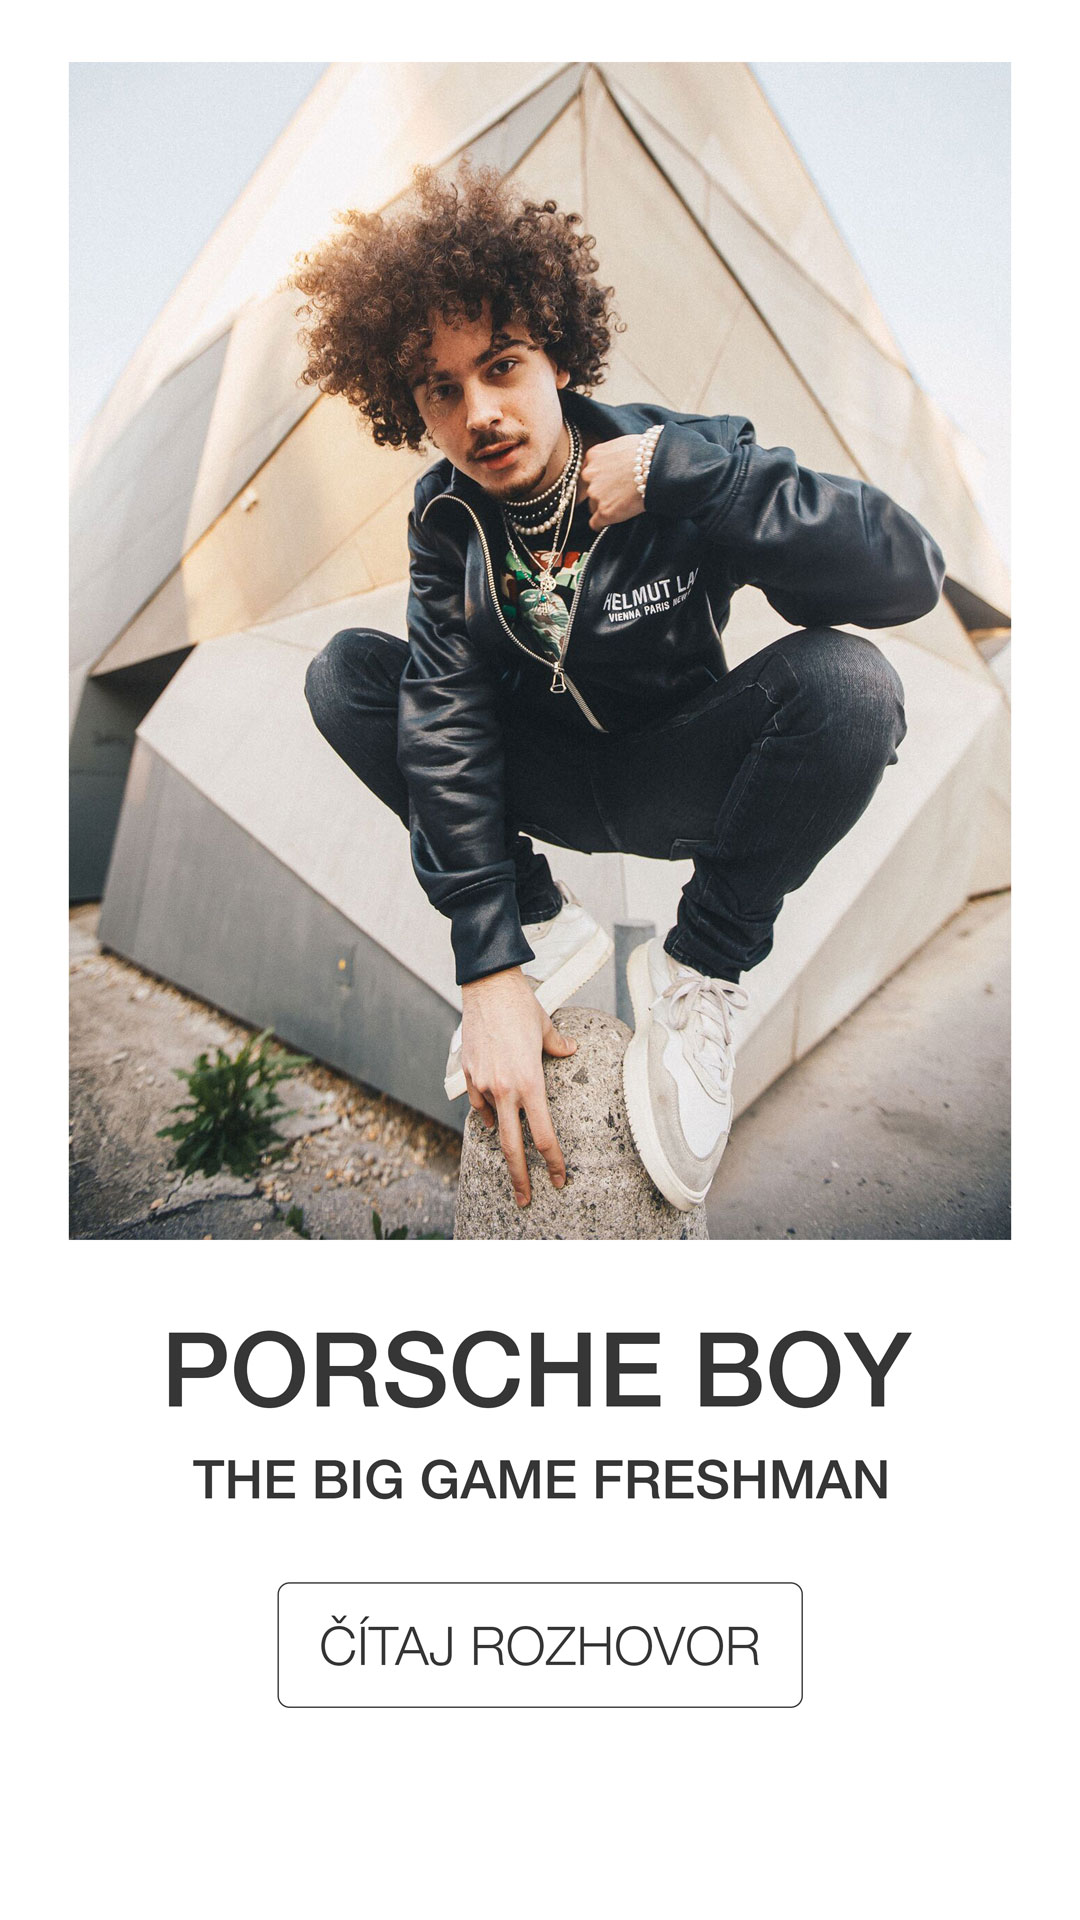 https://shatle.com/sk/blog/203-porsche-boy-the-big-game-freshman